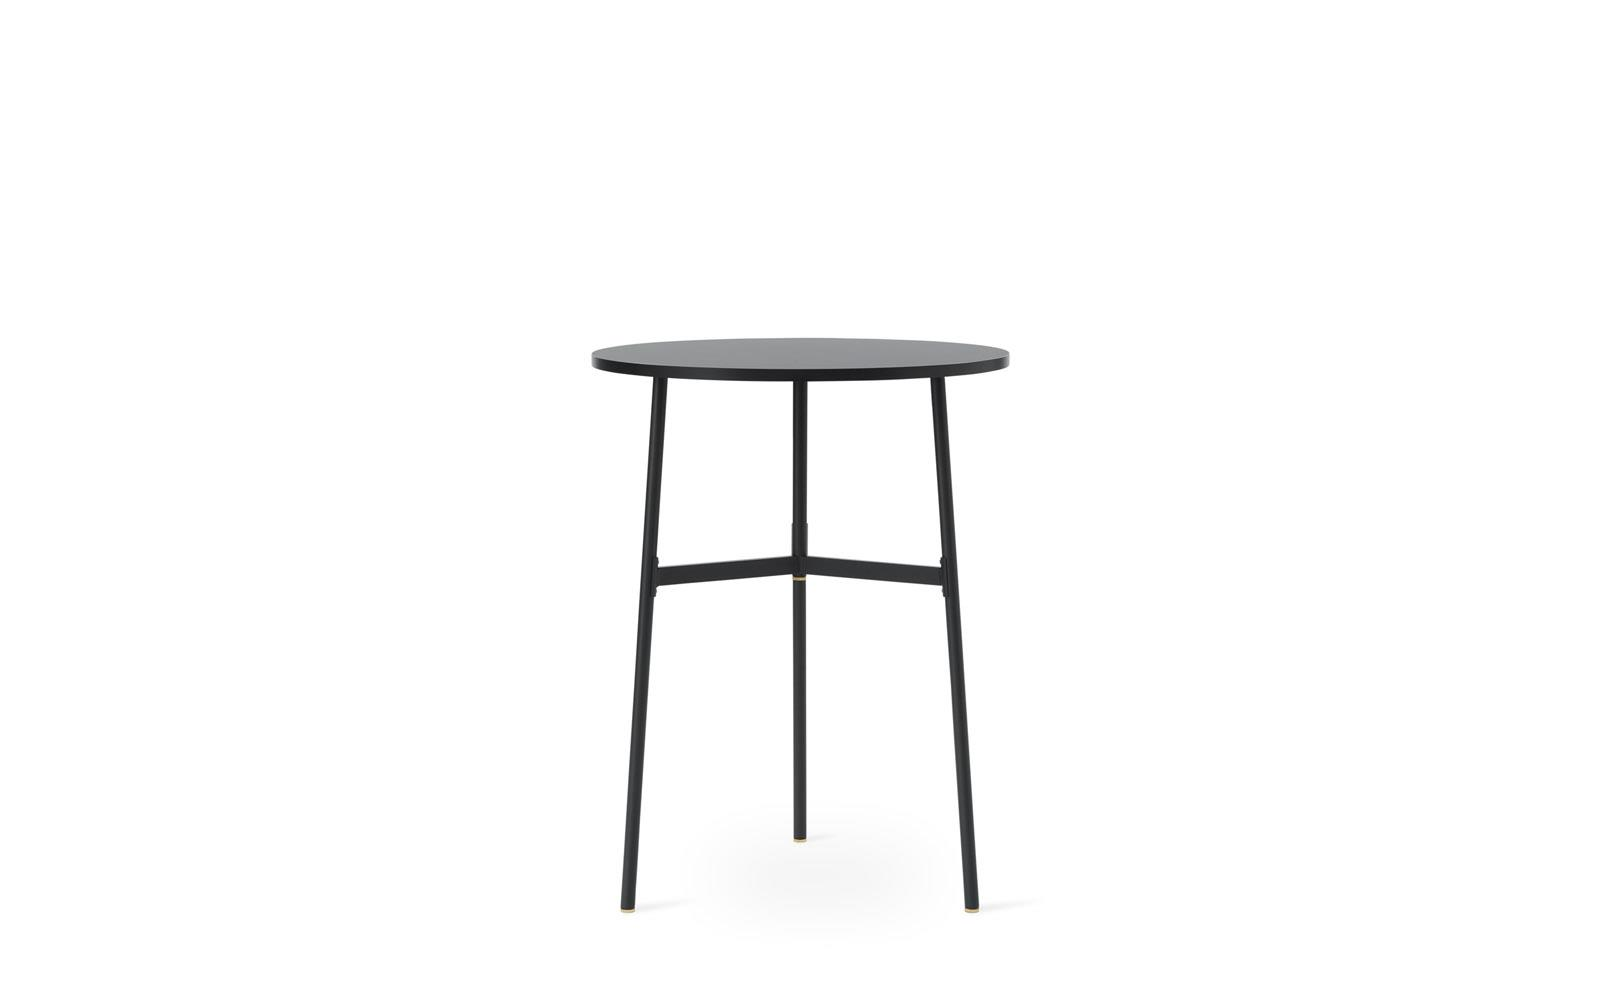 Union Table 80 x H1055 cm2